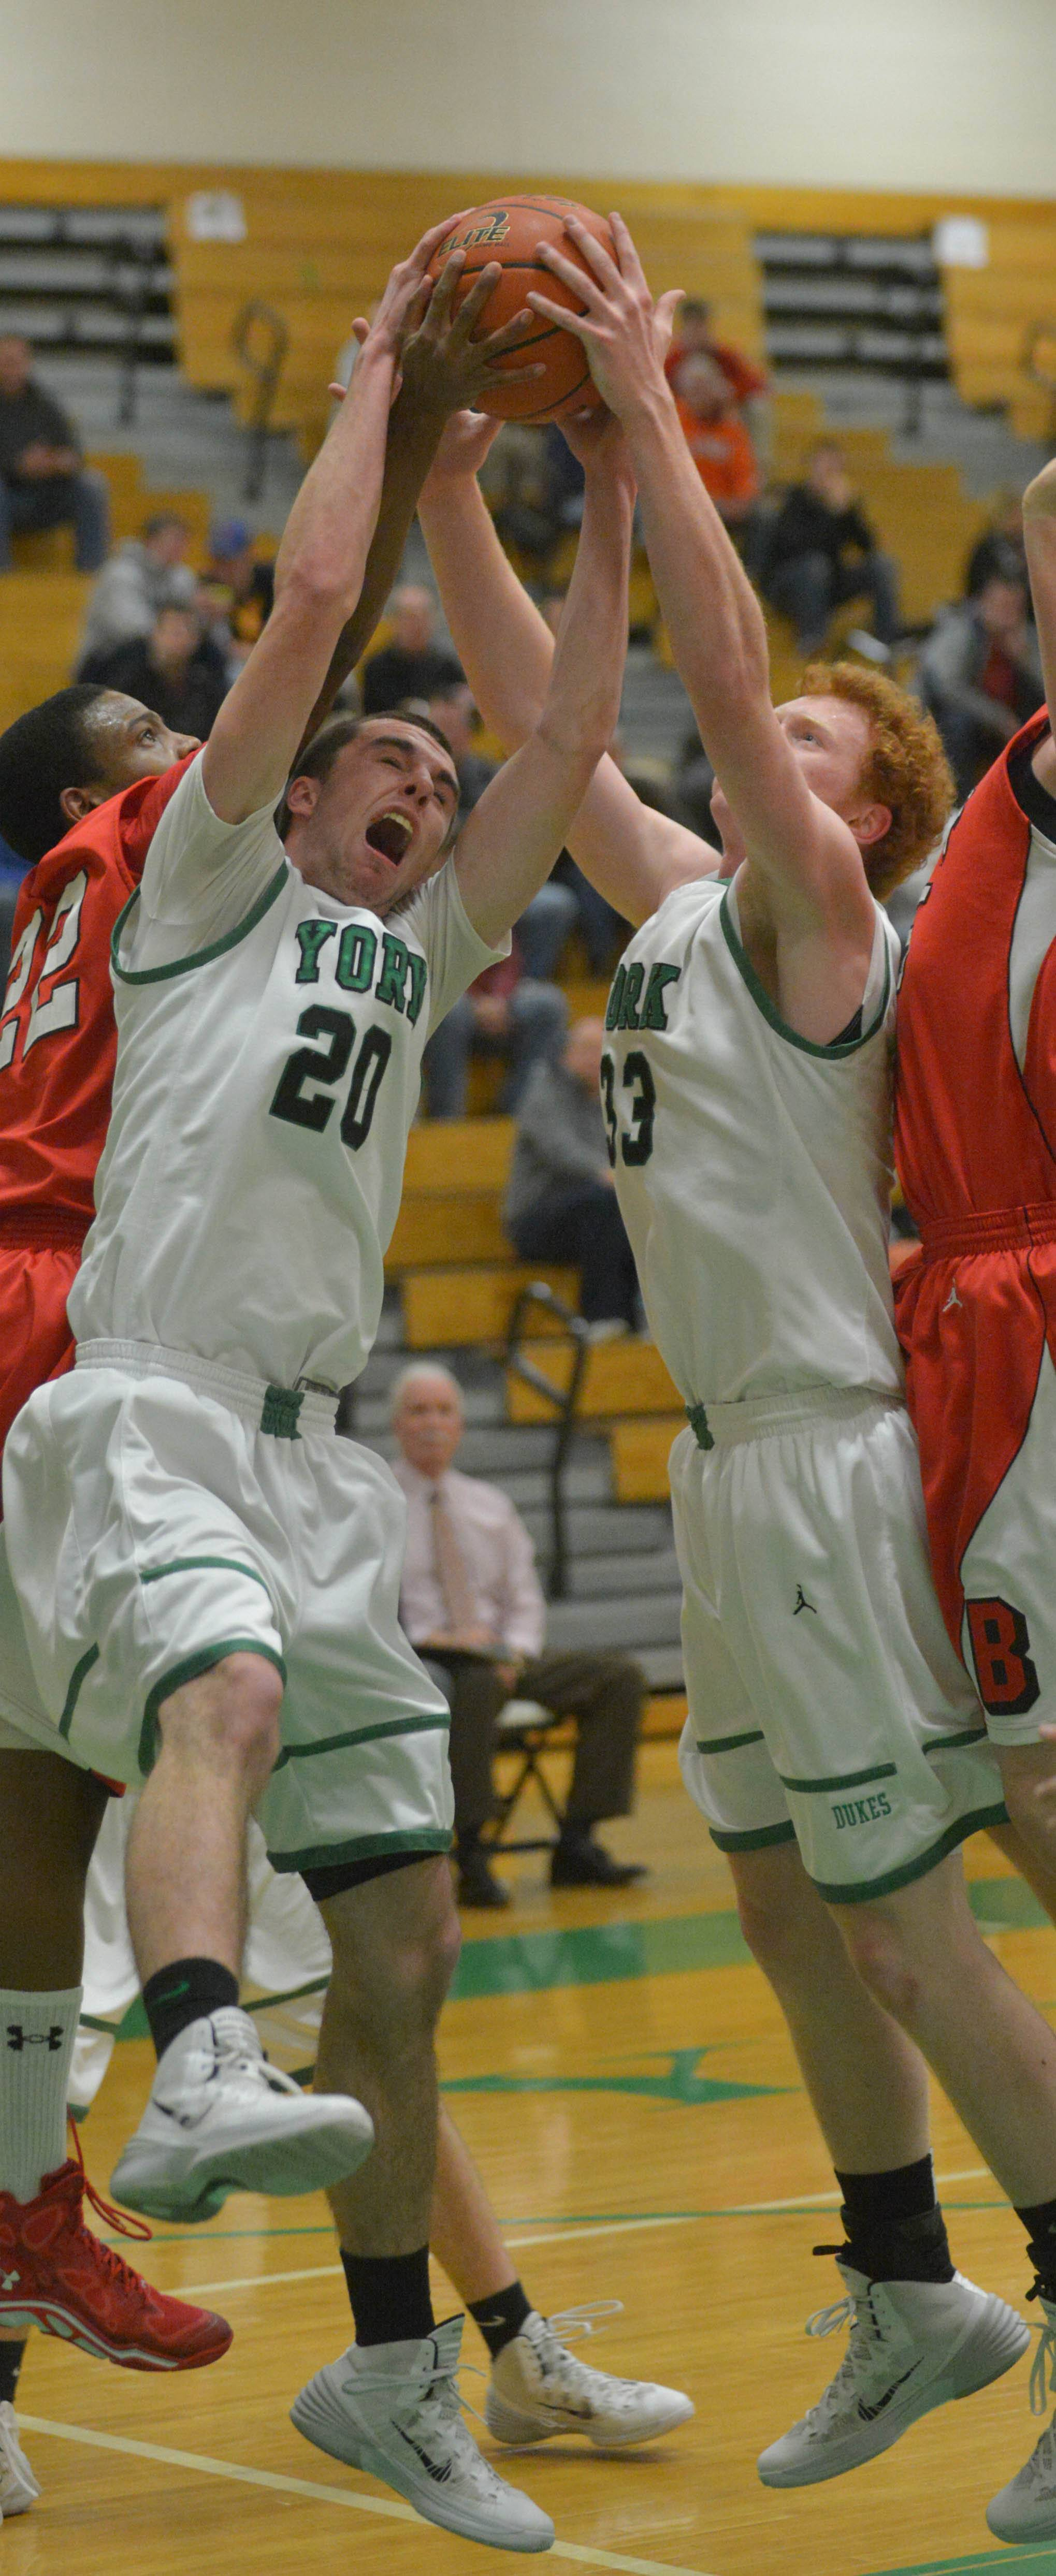 Charlie Rose and Frank Toohey of York pull down a rebound during Benet at York.